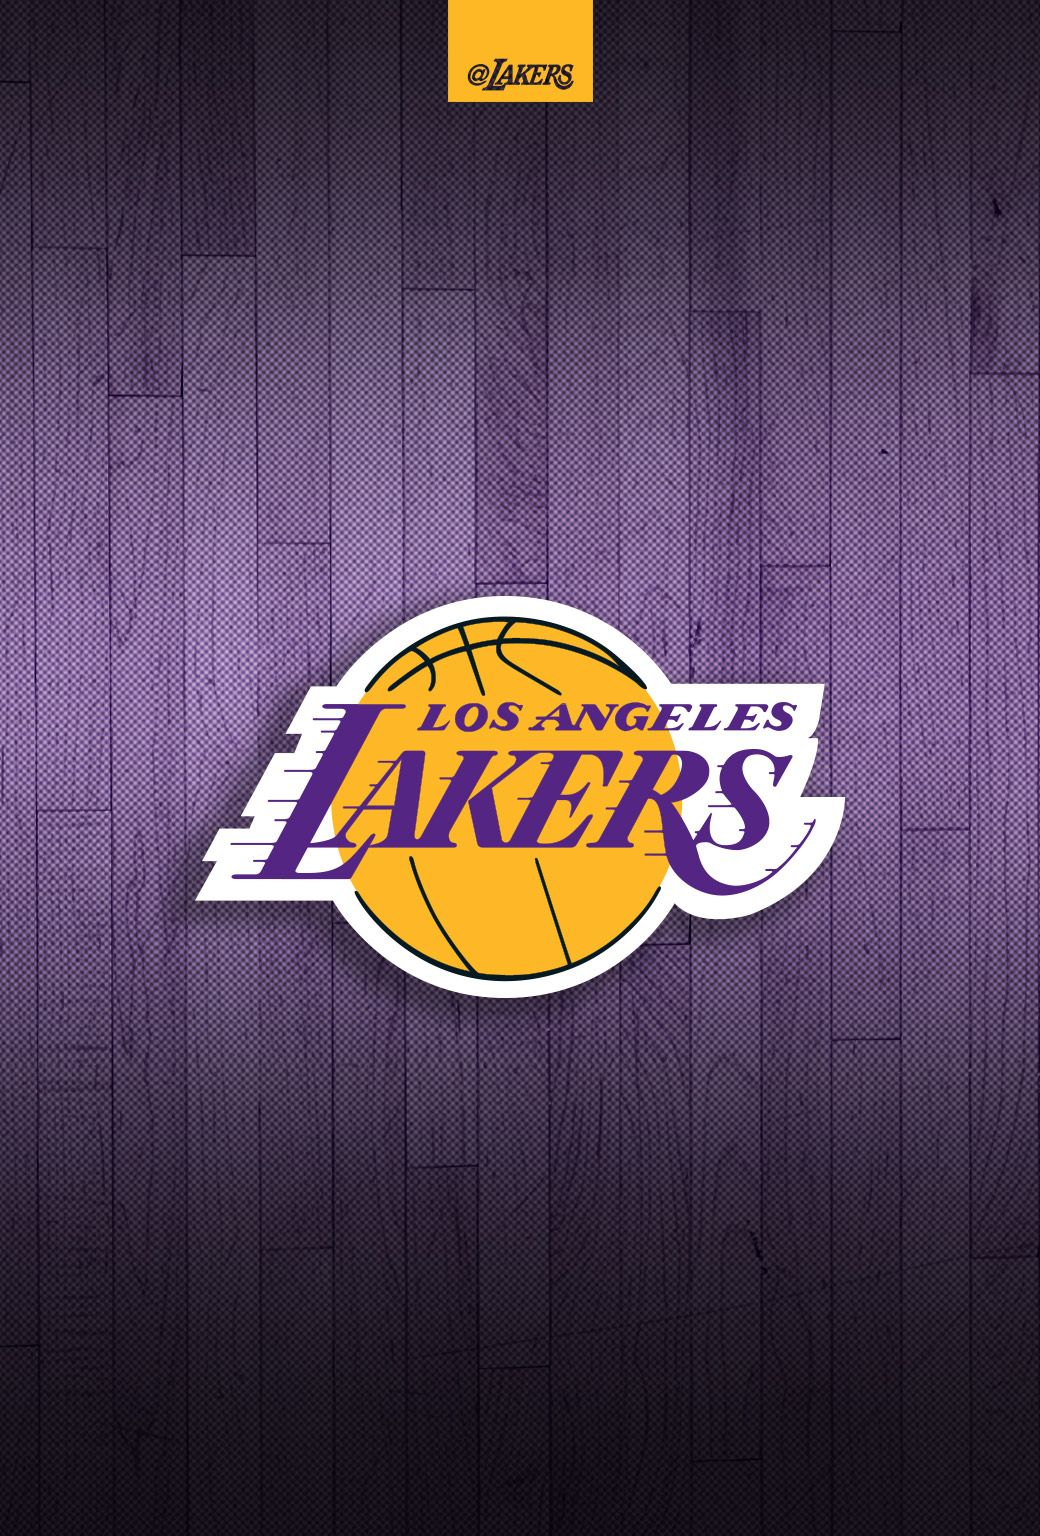 Lakers Wallpaper Android Lakers Wallpaper Los Angeles Lakers Lakers